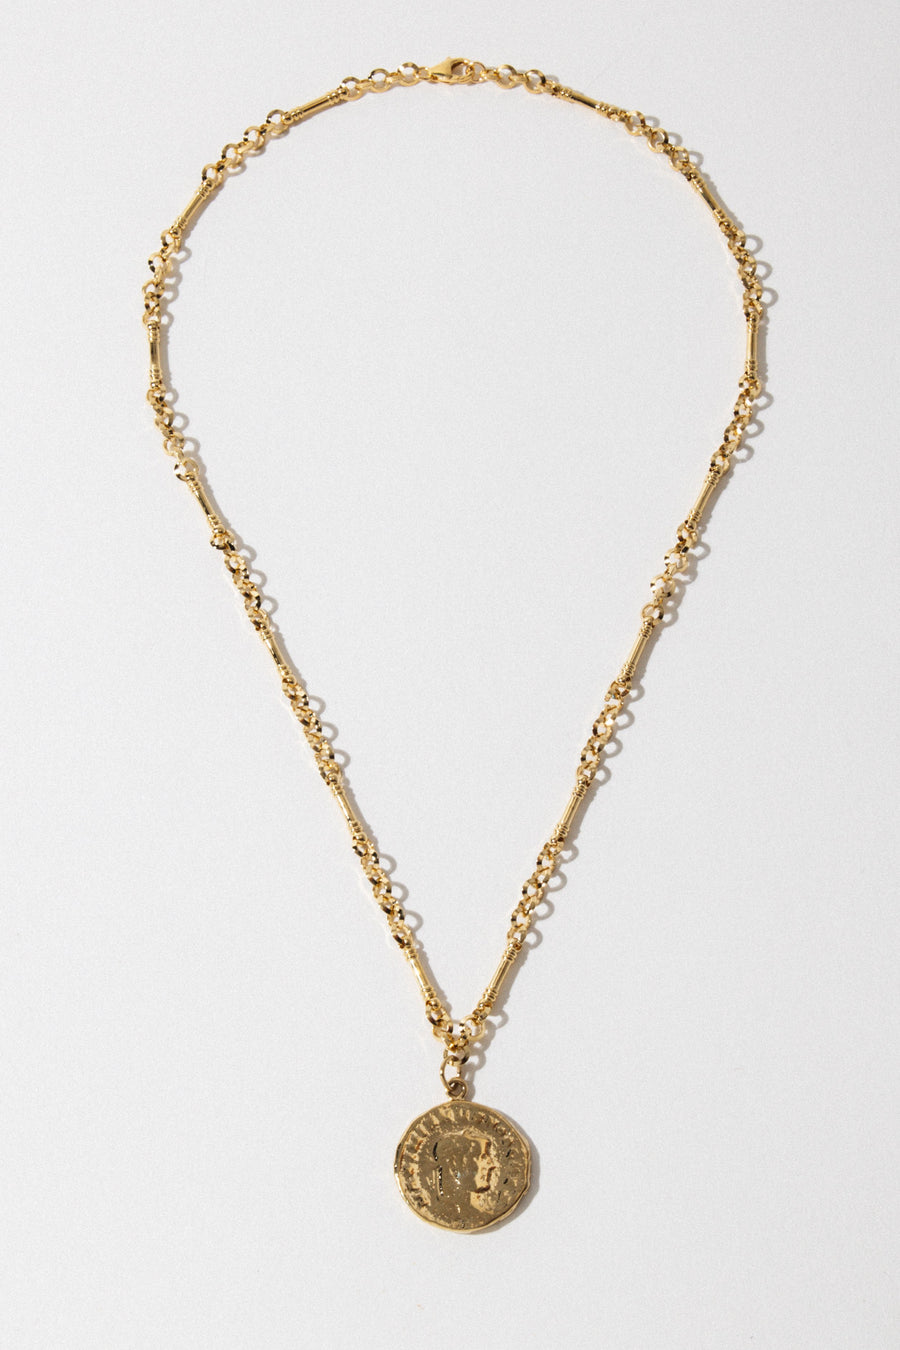 Goddess Jewelry Gold / 20 Inches Roma Coin Necklace